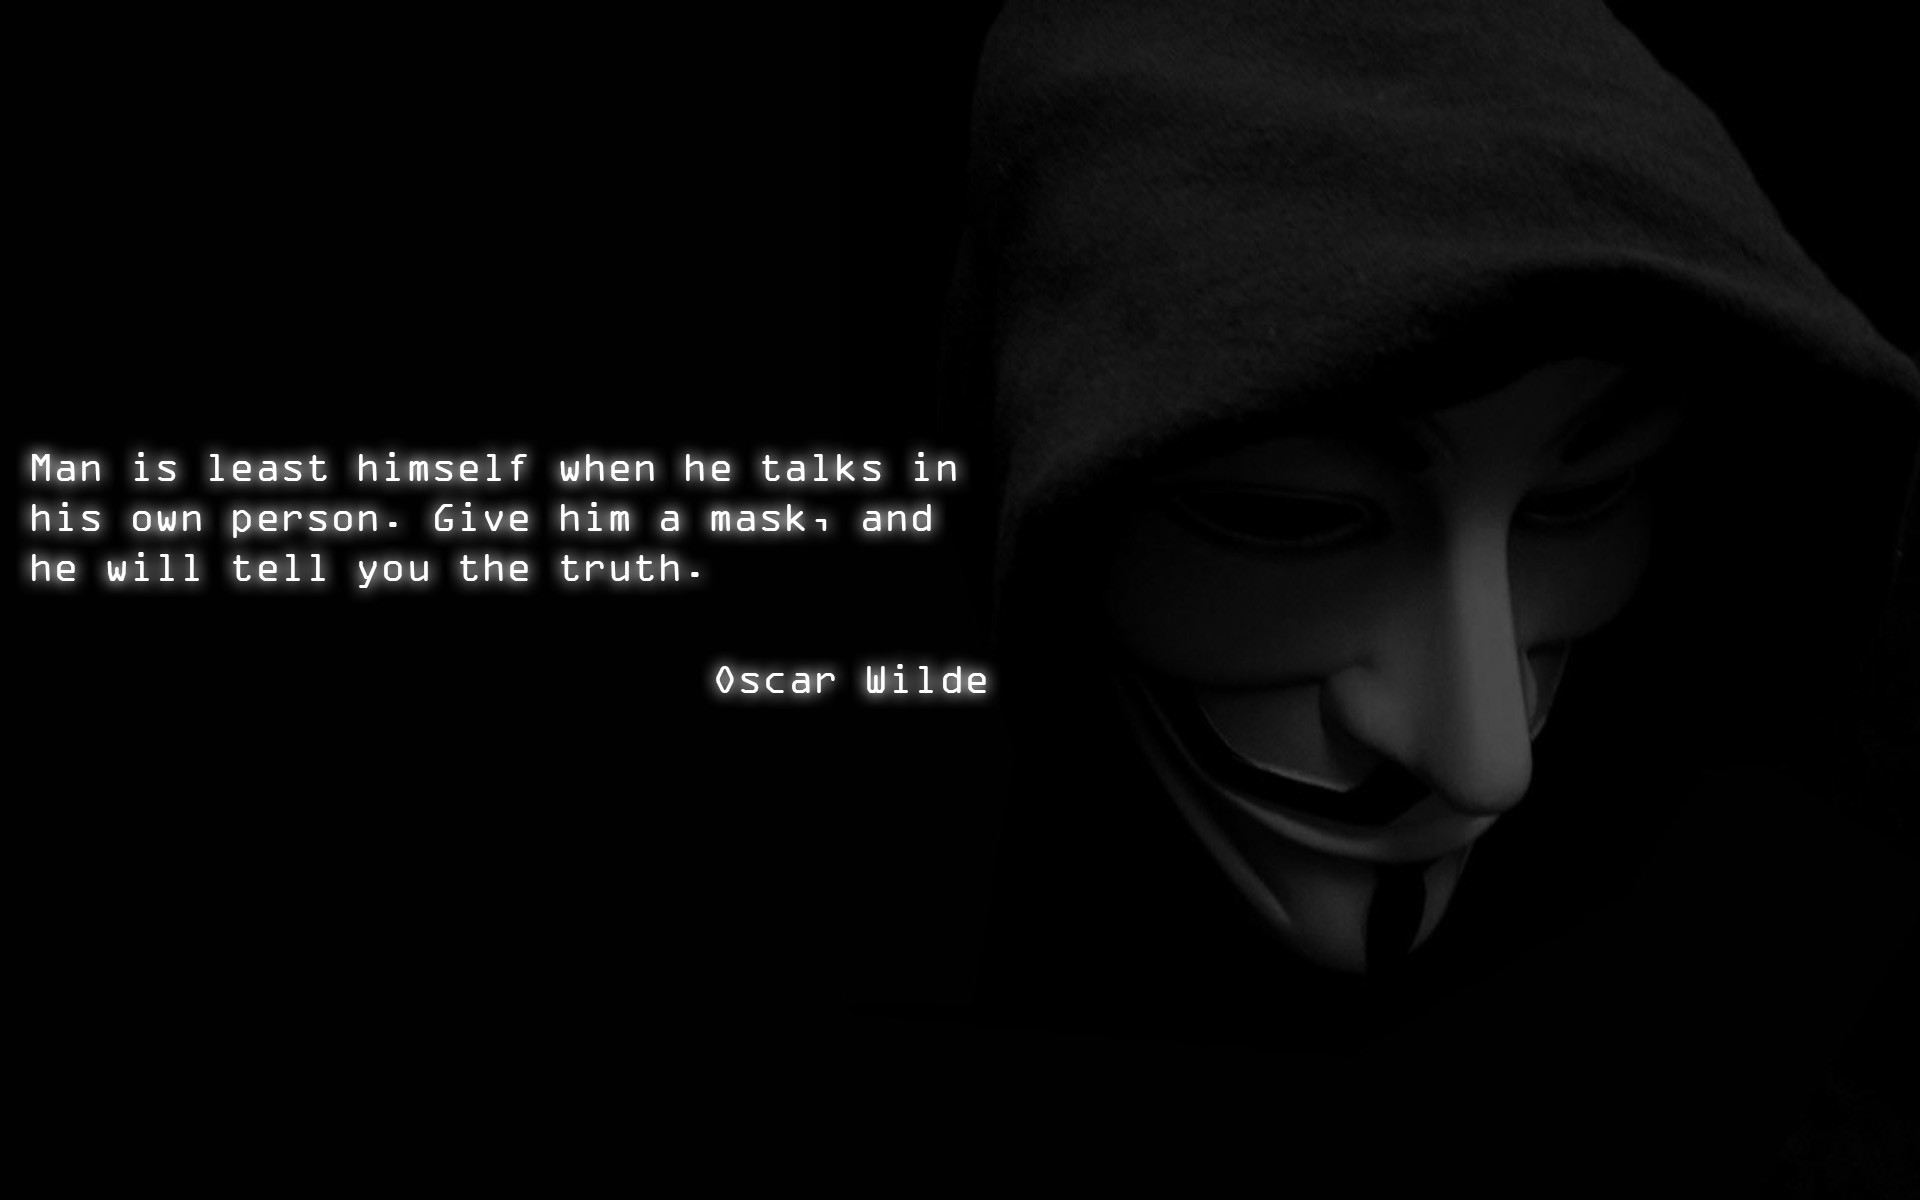 Download Guy Fawkes Wallpaper Hd Backgrounds Download Itl Cat